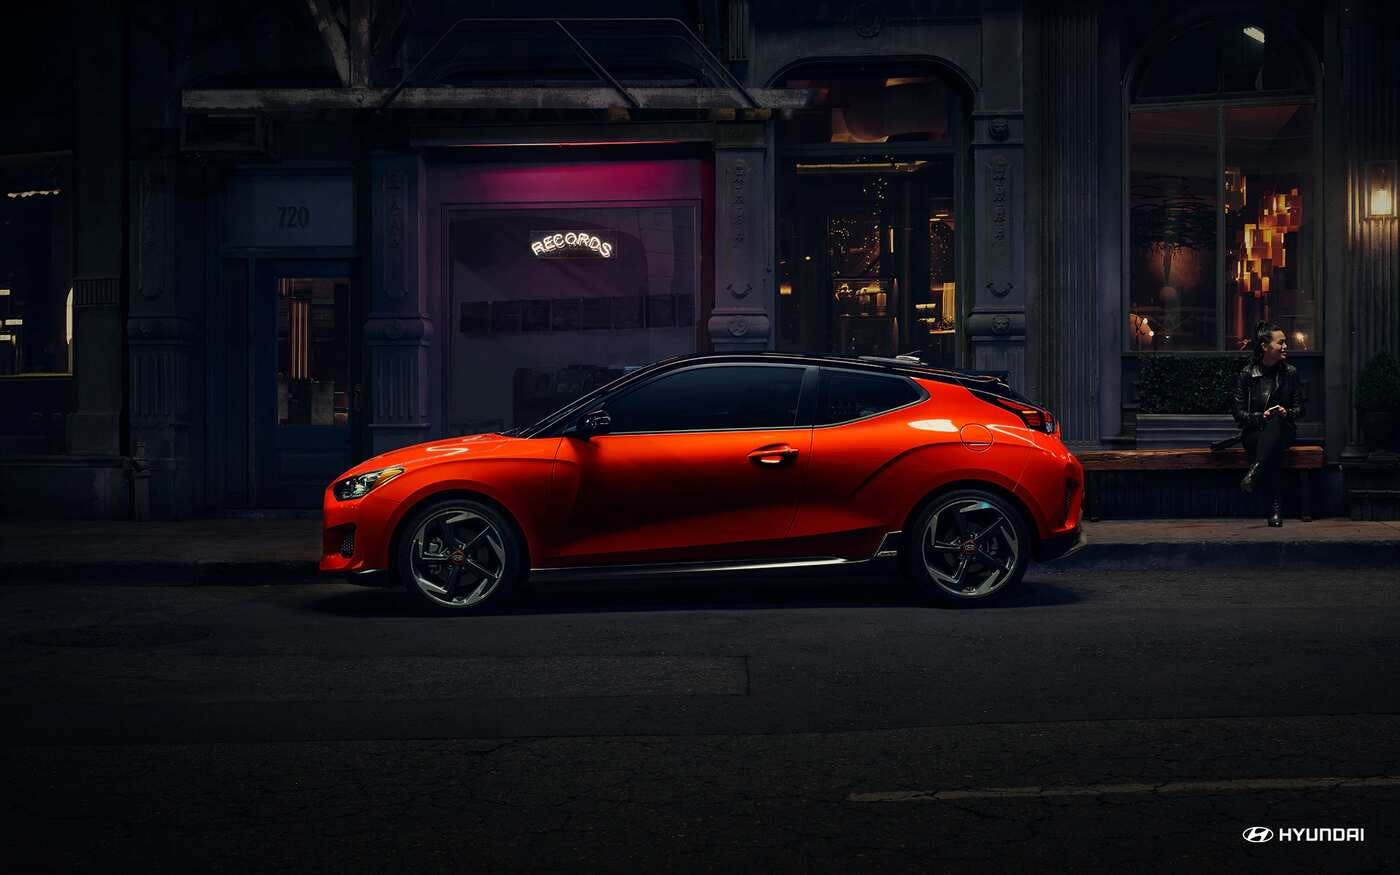 2019 Hyundai Veloster Comparisons, Reviews & Pictures | TrueCar